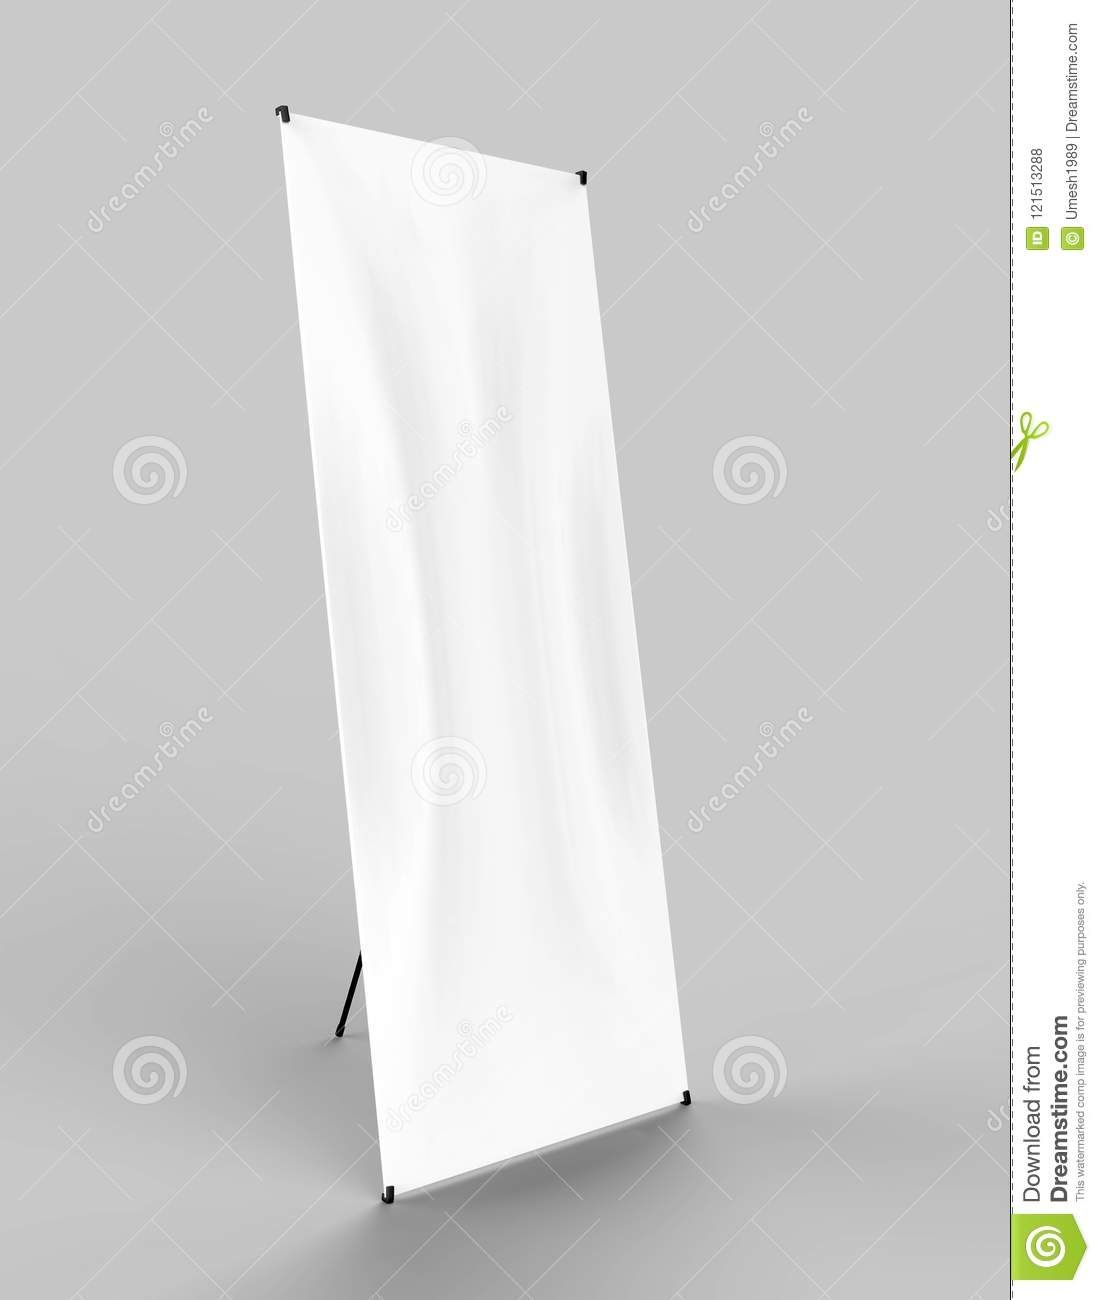 X-STYLE COLLAPSIBLE BANNER STAND  Stock Illustration